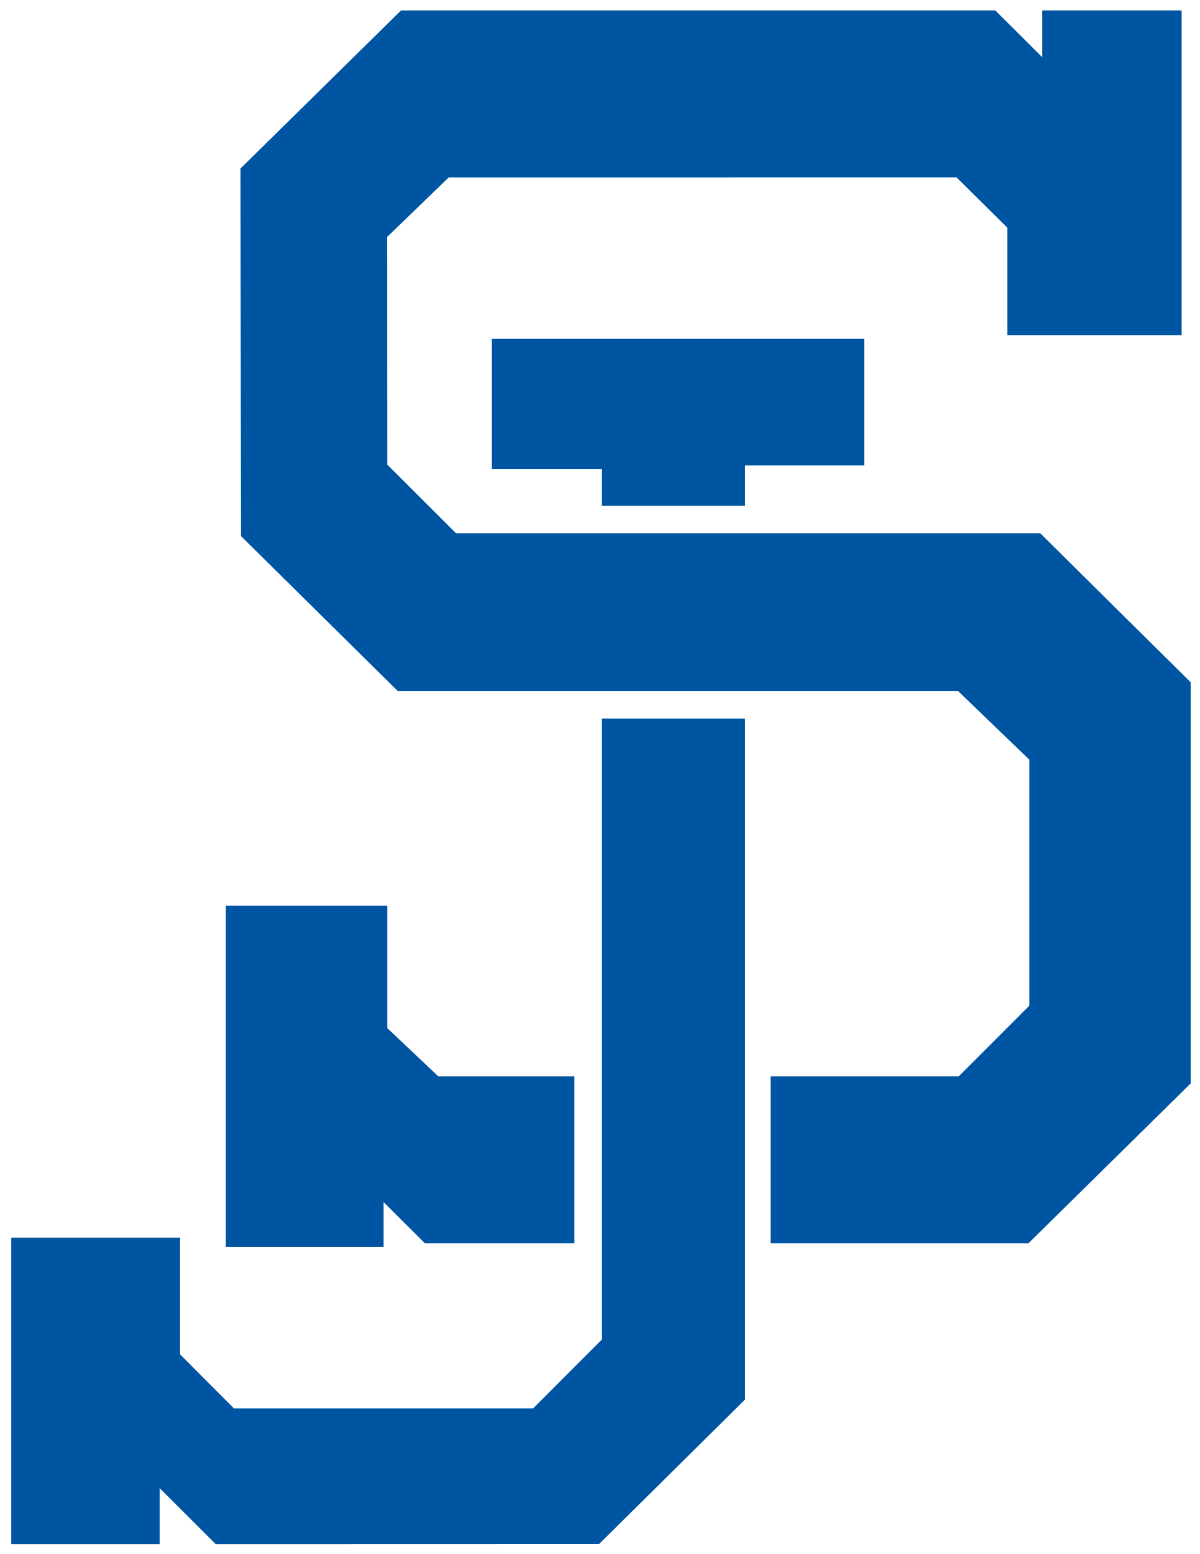 Free basketball clipart blue spartan clipart royalty free library San Jose State Spartans baseball - Wikipedia clipart royalty free library